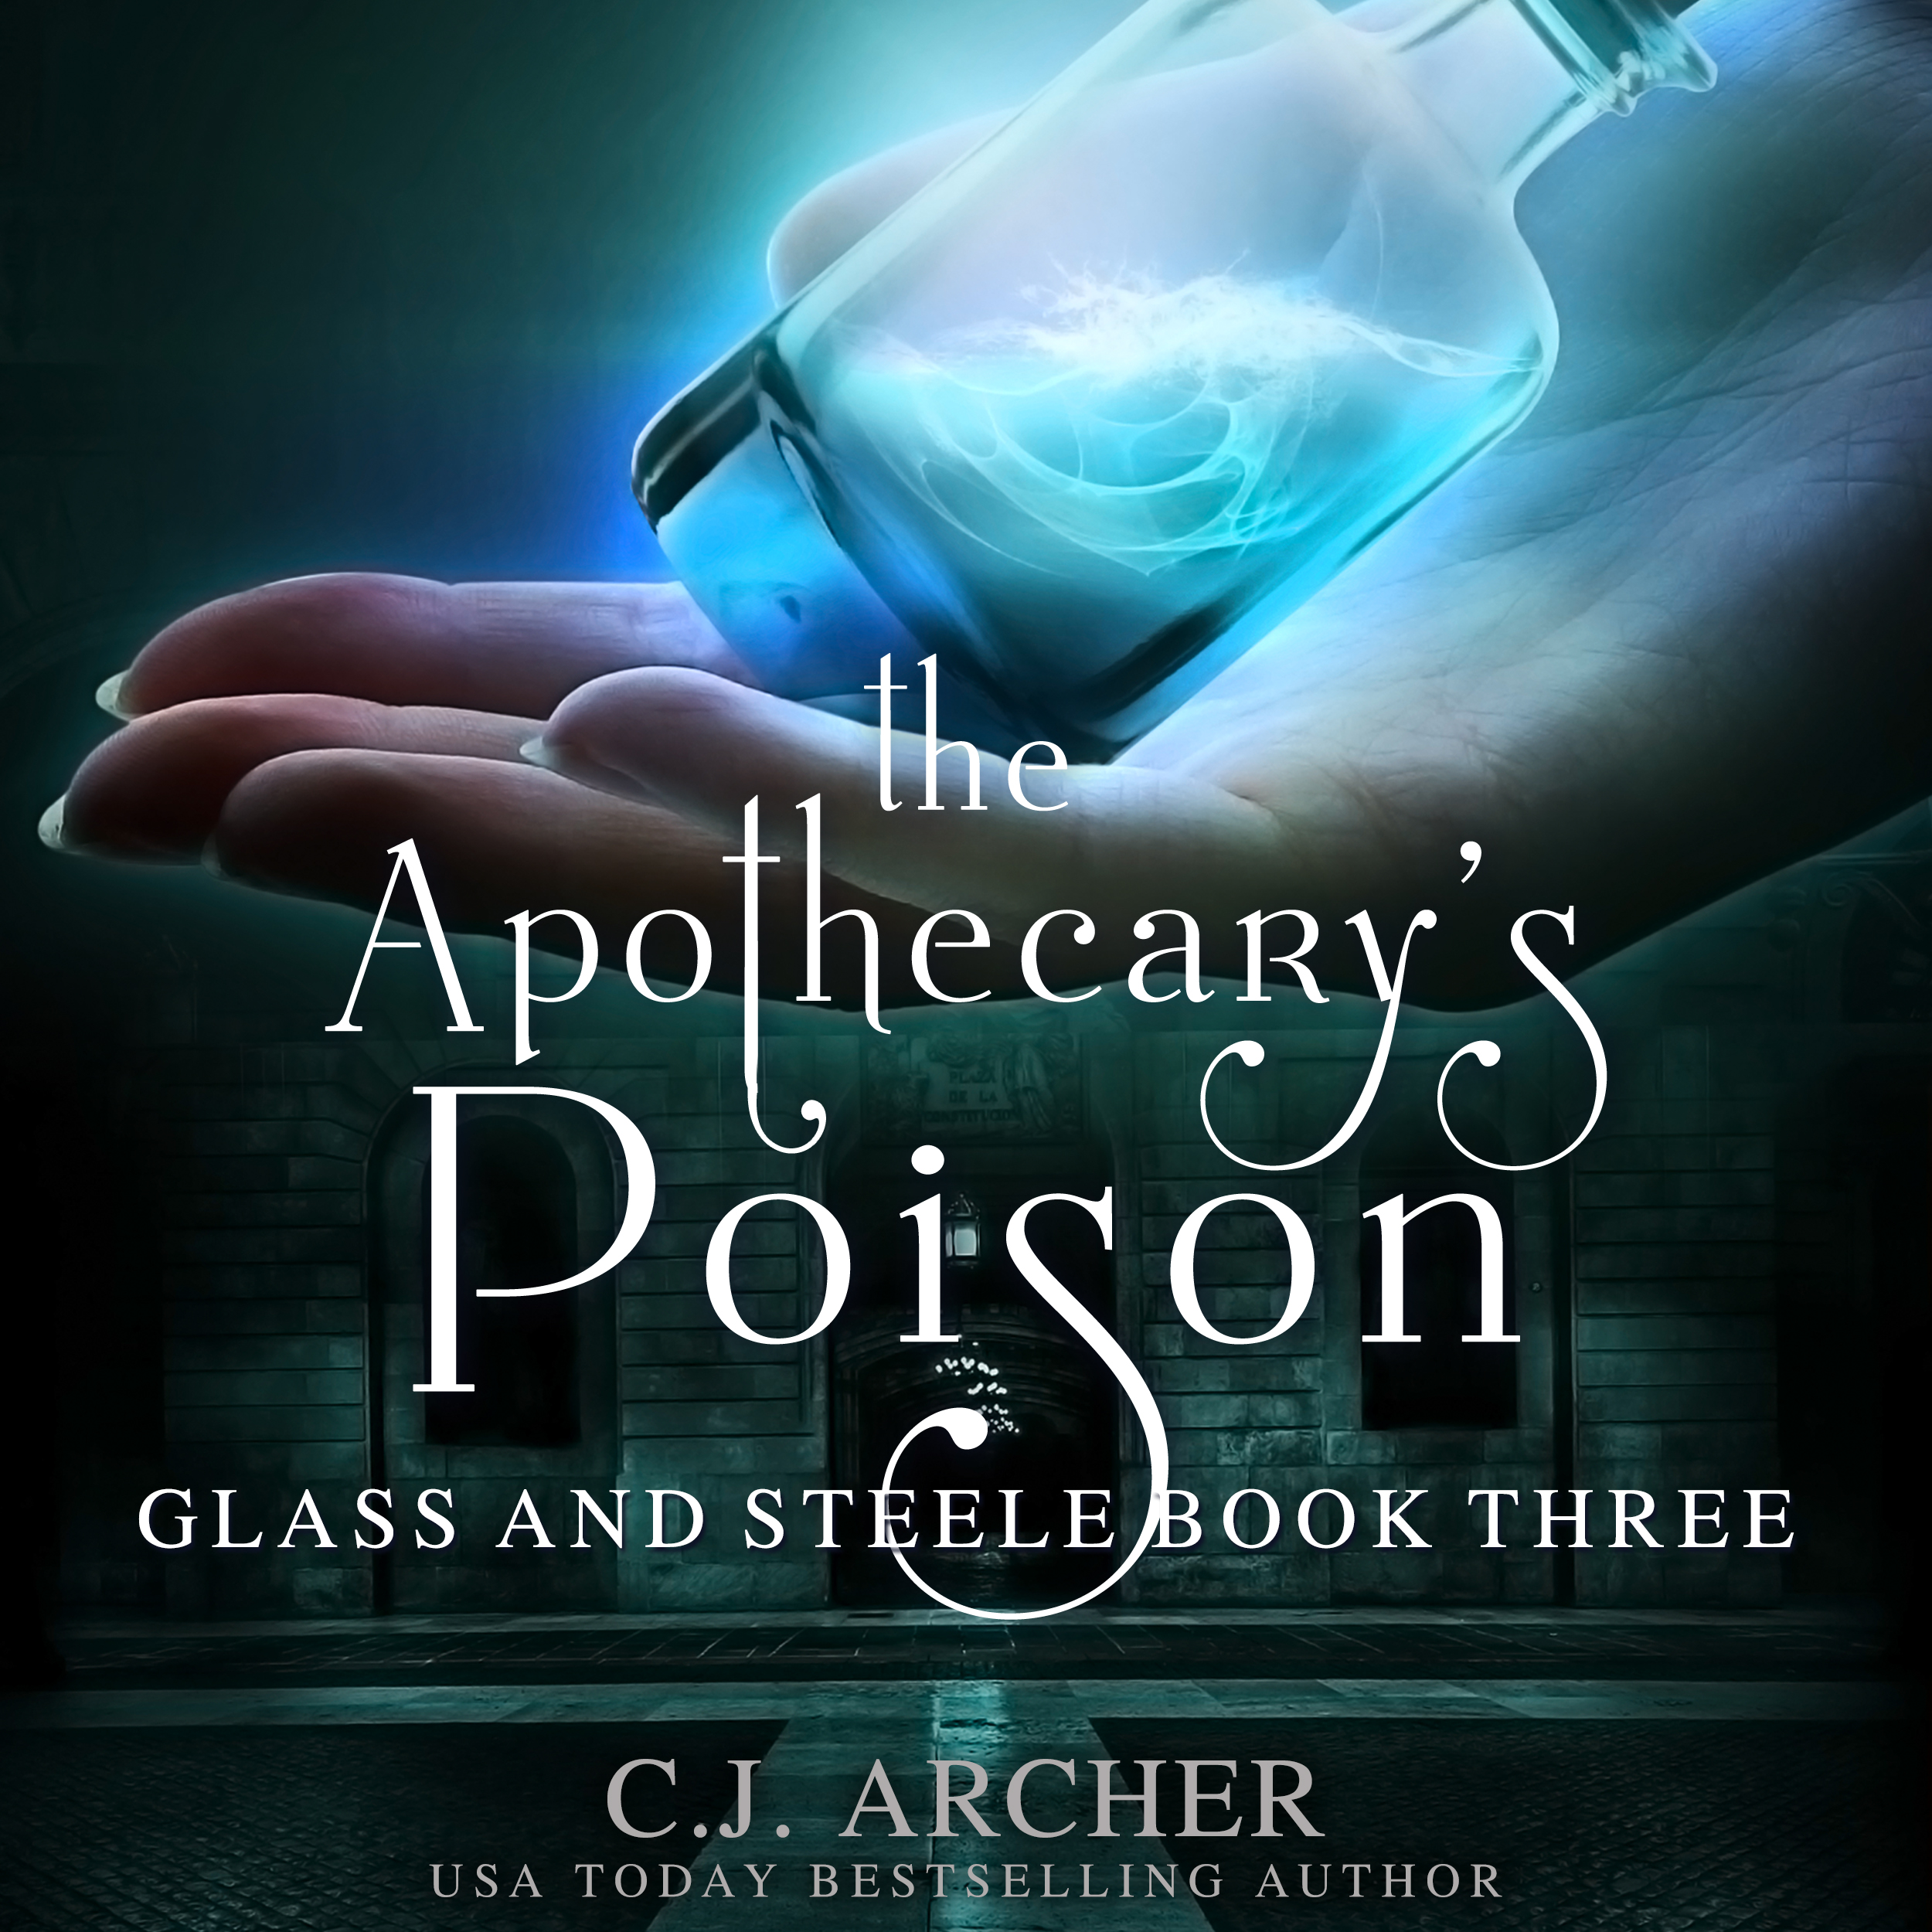 The Apothecary's Poison audiobook by CJ Archer